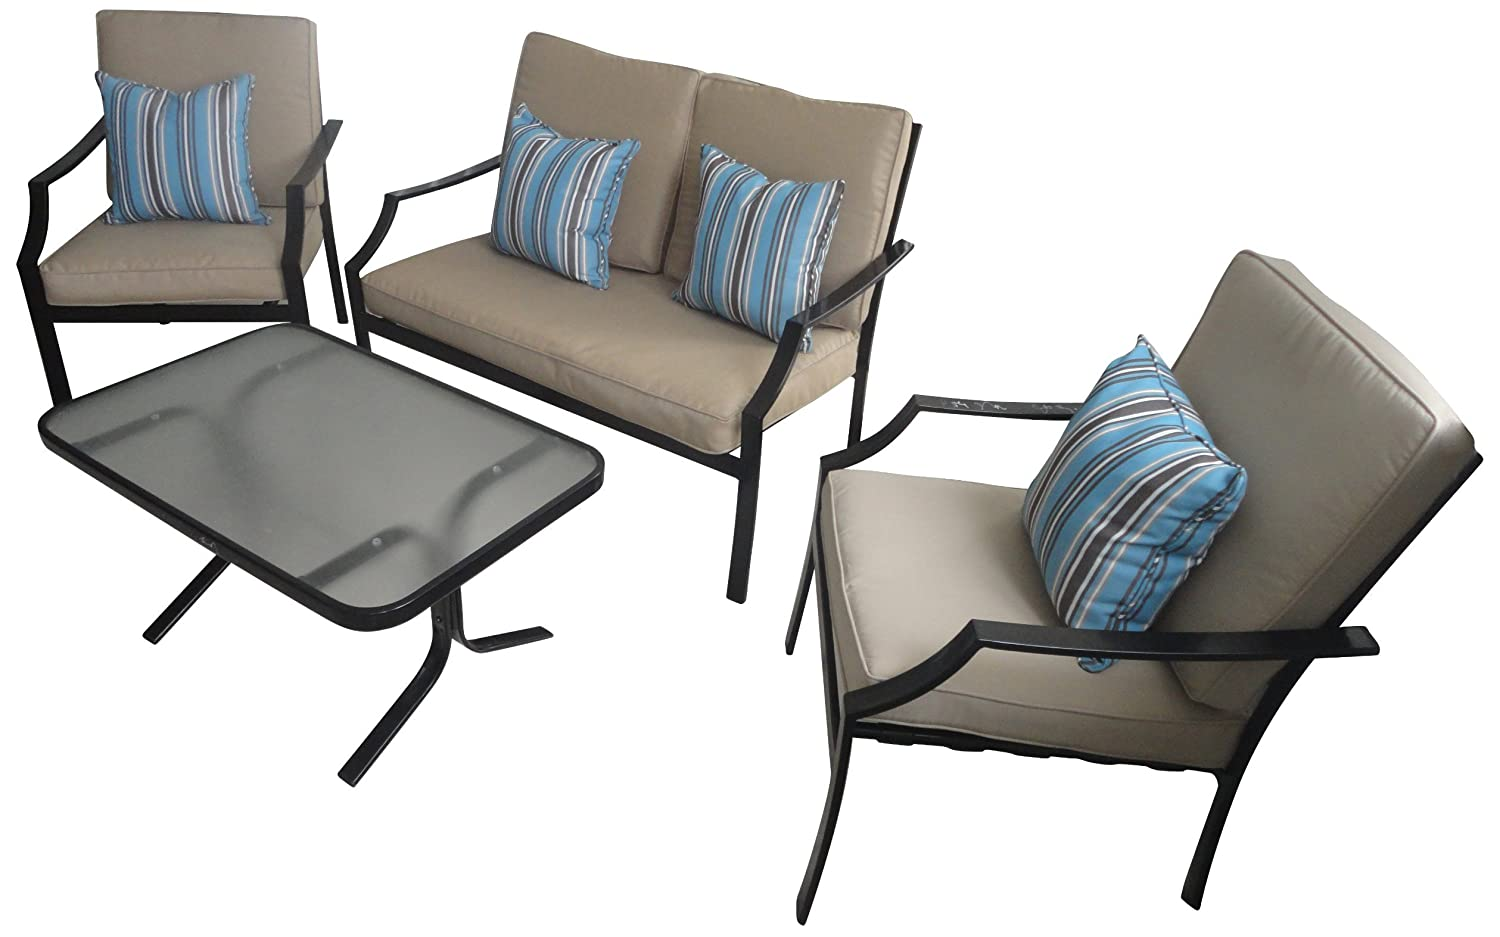 amazoncom strathwood brentwood 4piece allweather furniture set outdoor and patio furniture sets patio lawn u0026 garden - Cheap Patio Furniture Sets